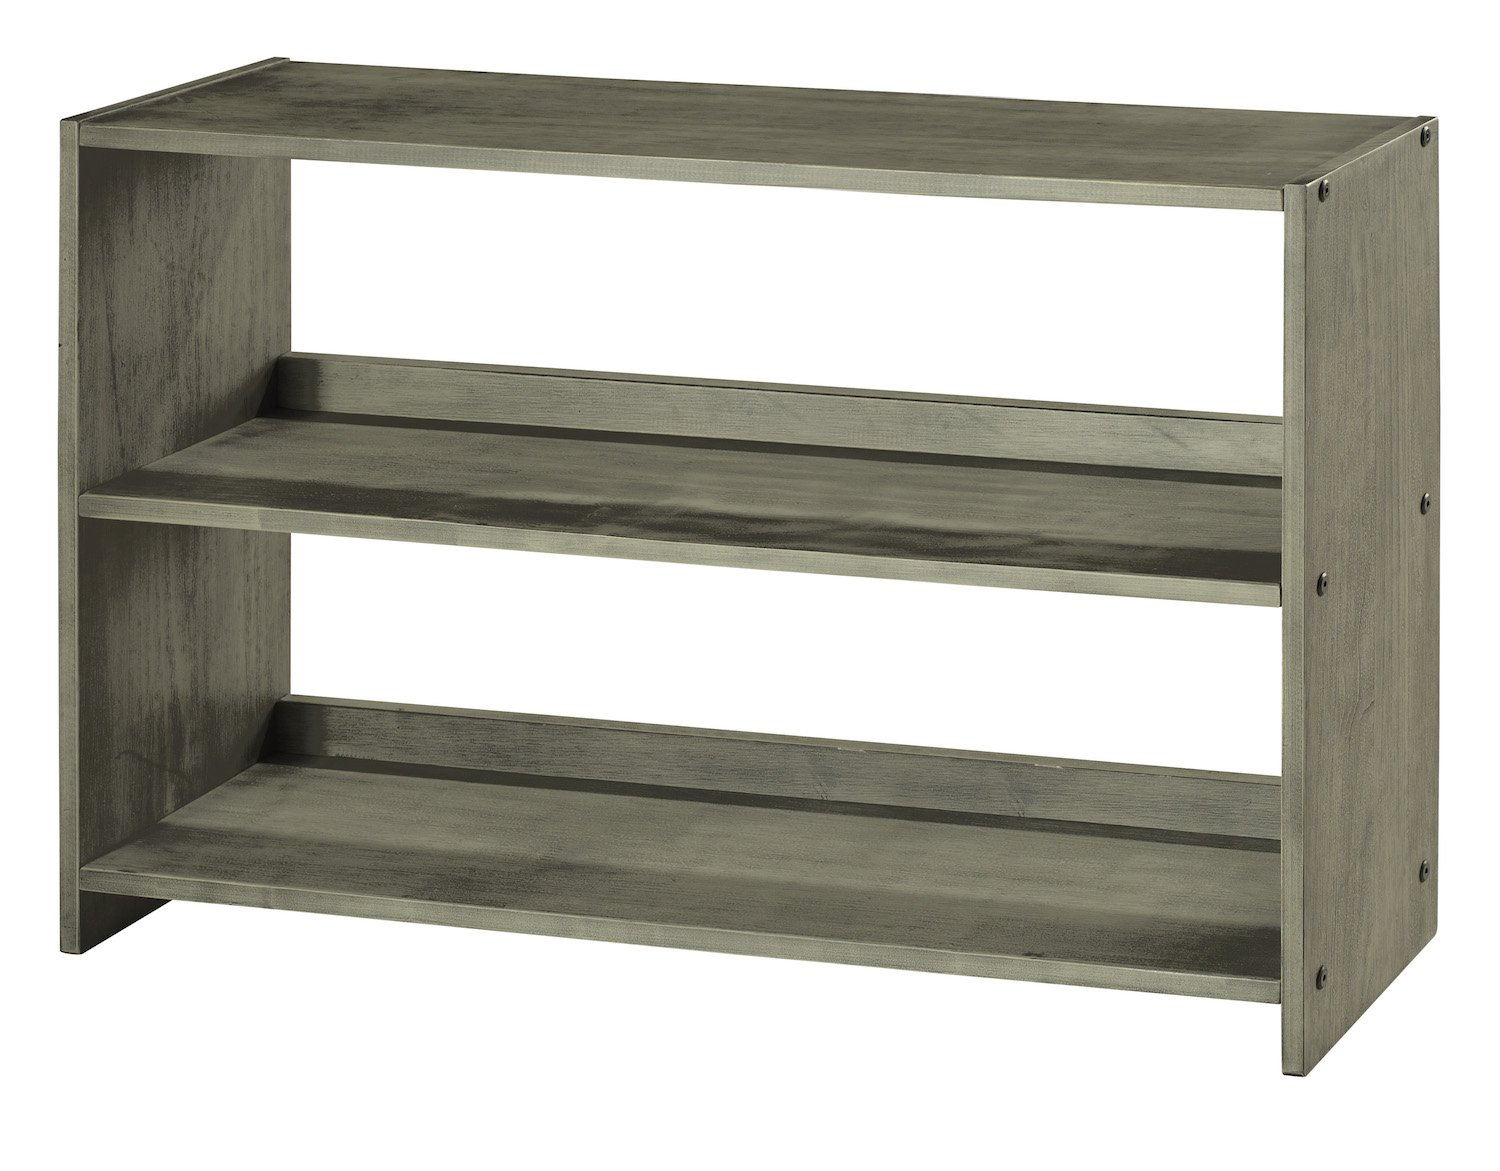 DONCO KIDS 790DAG Louver Bookcase, Antique Grey - LARGE LOUVER BOOKCASE BOOKCASE FOR DONCO KIDS 790AAG LOW LOFT SOME ASSEMBLY REQUIRED - living-room-furniture, living-room, bookcases-bookshelves - 7154yni%2BBhL -